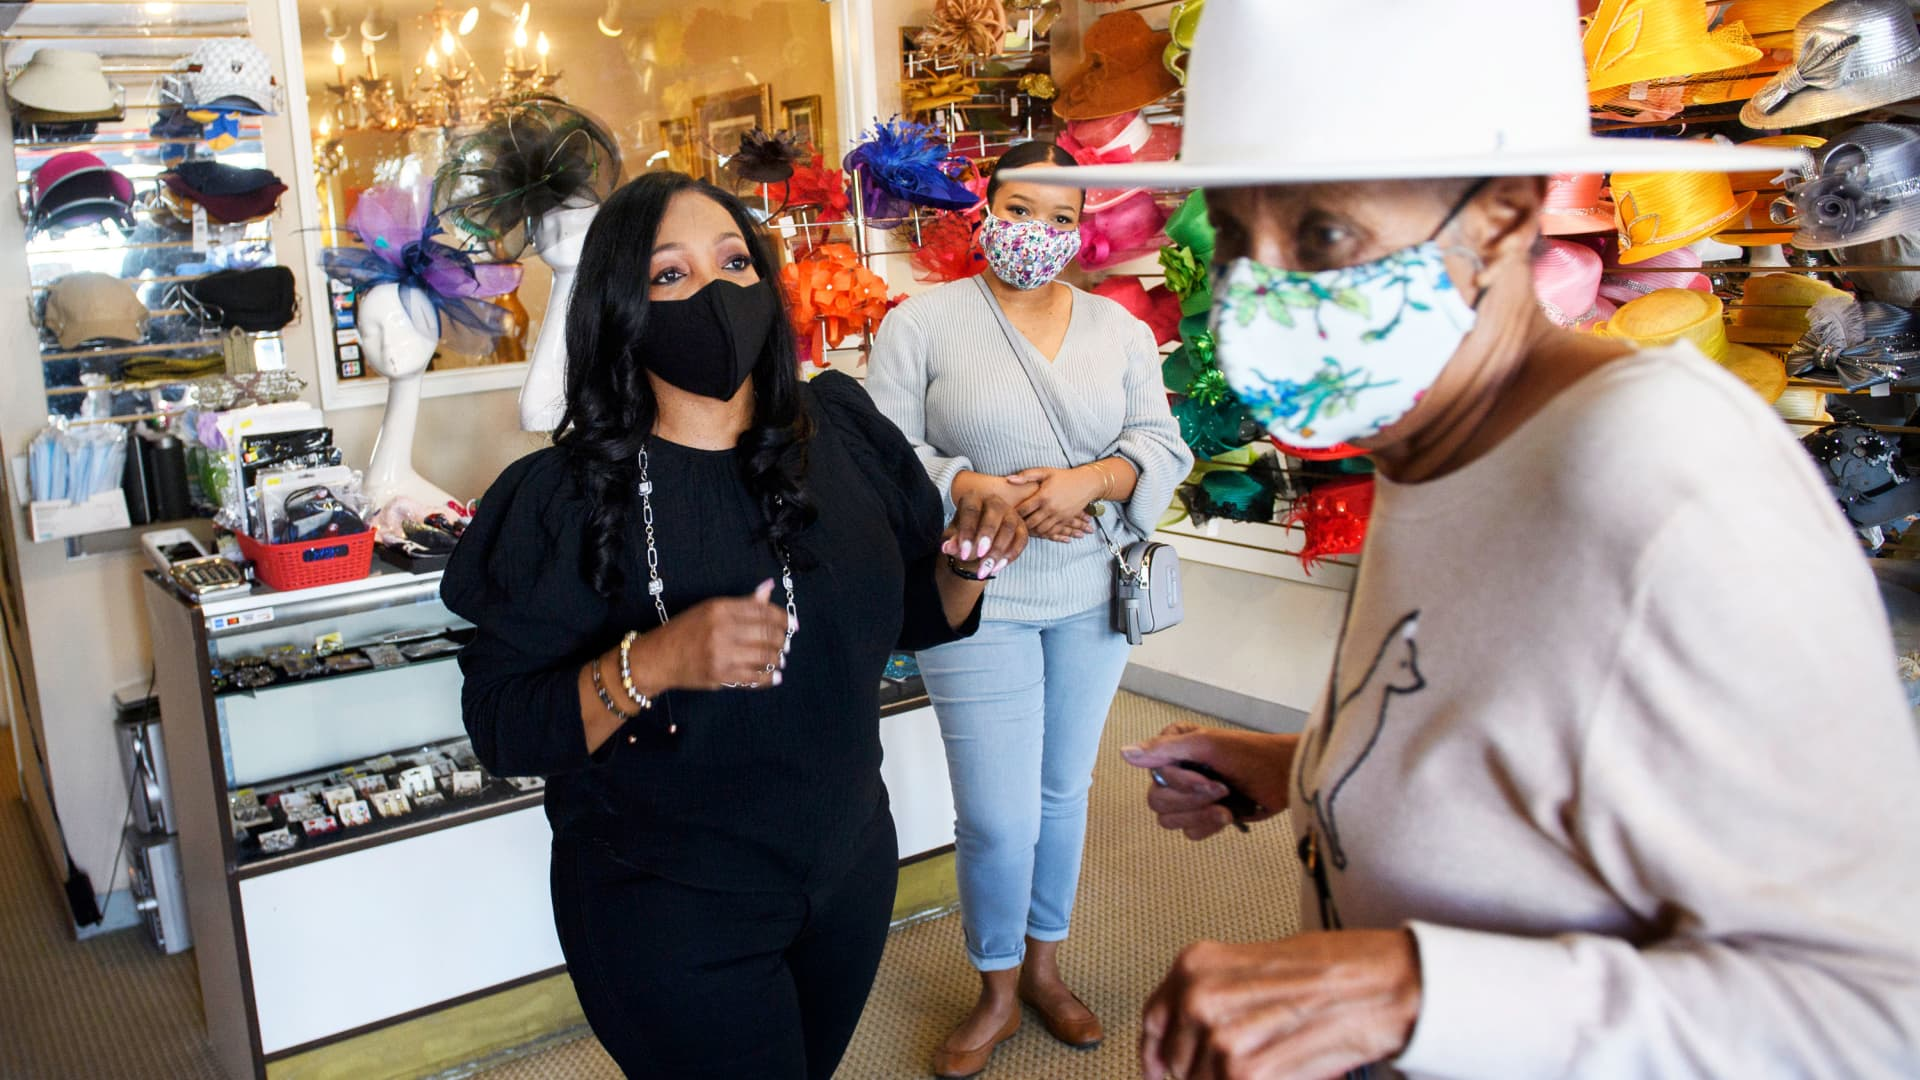 Customer Tamara Jenkins tries on a hat with Meeka Robinson Davis, owner of One-Of-A-Kind Hats, as Davis' daughter Chrstiana Davis looks on, at the store in the Windsor Hills neighborhood of Los Angeles, California, November 24, 2020.